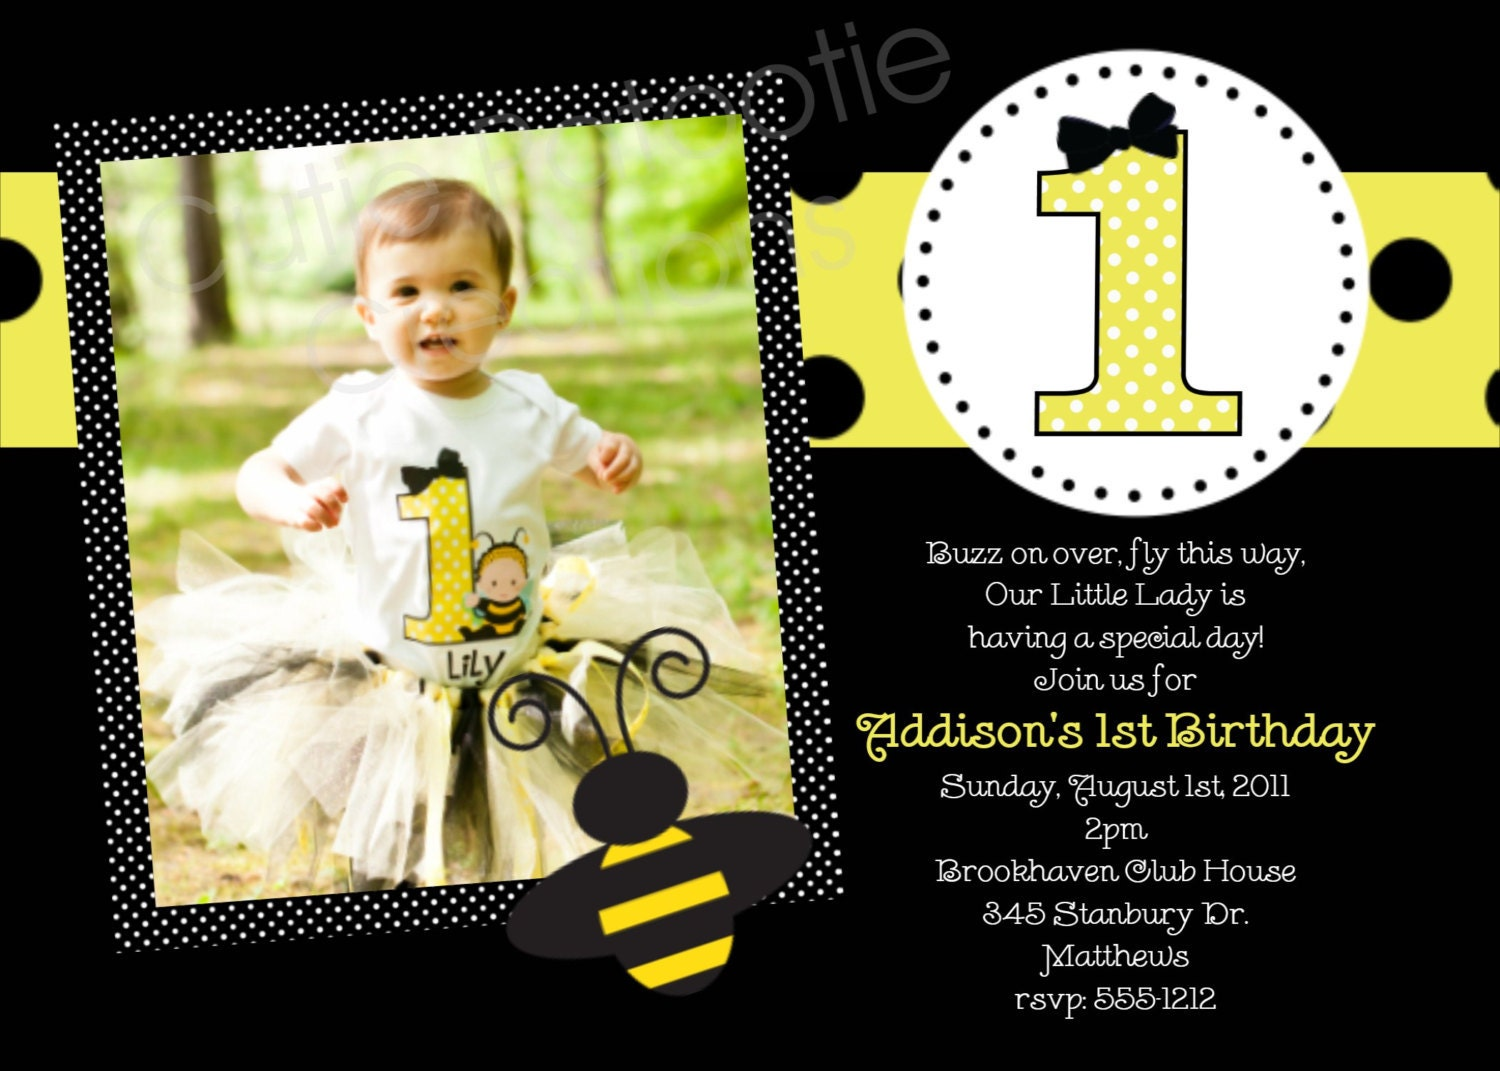 Bumble Bee Birthday Party Invitations Printable or Printed – Bumble Bee Party Invitations